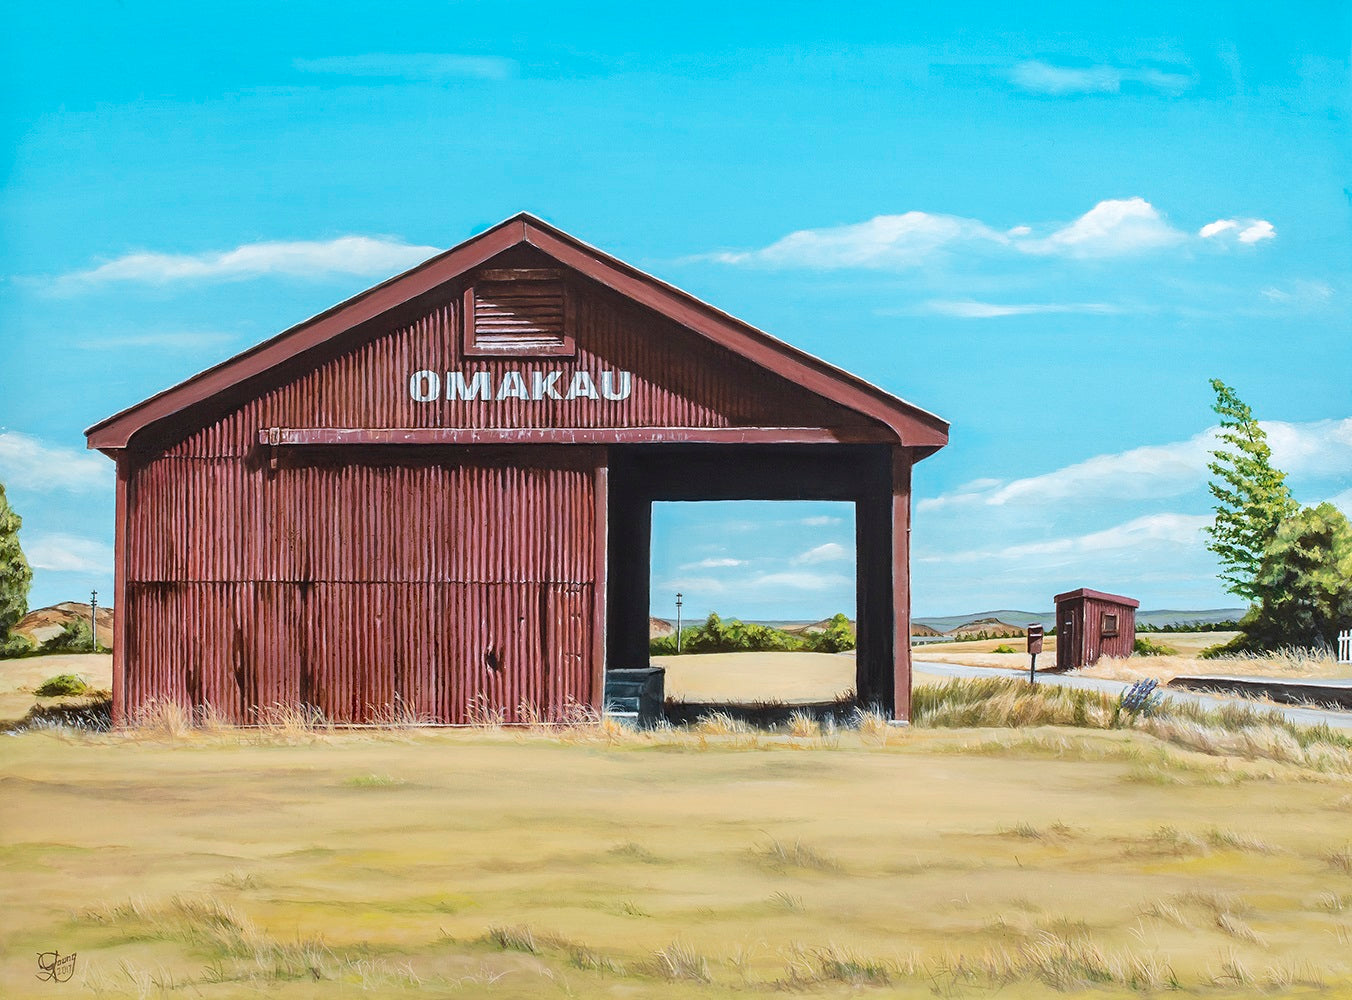 Omakau Rail Shed Prints - grahamyoungartist.com - Original Artwork and Prints by New Zealand Artist Graham Young